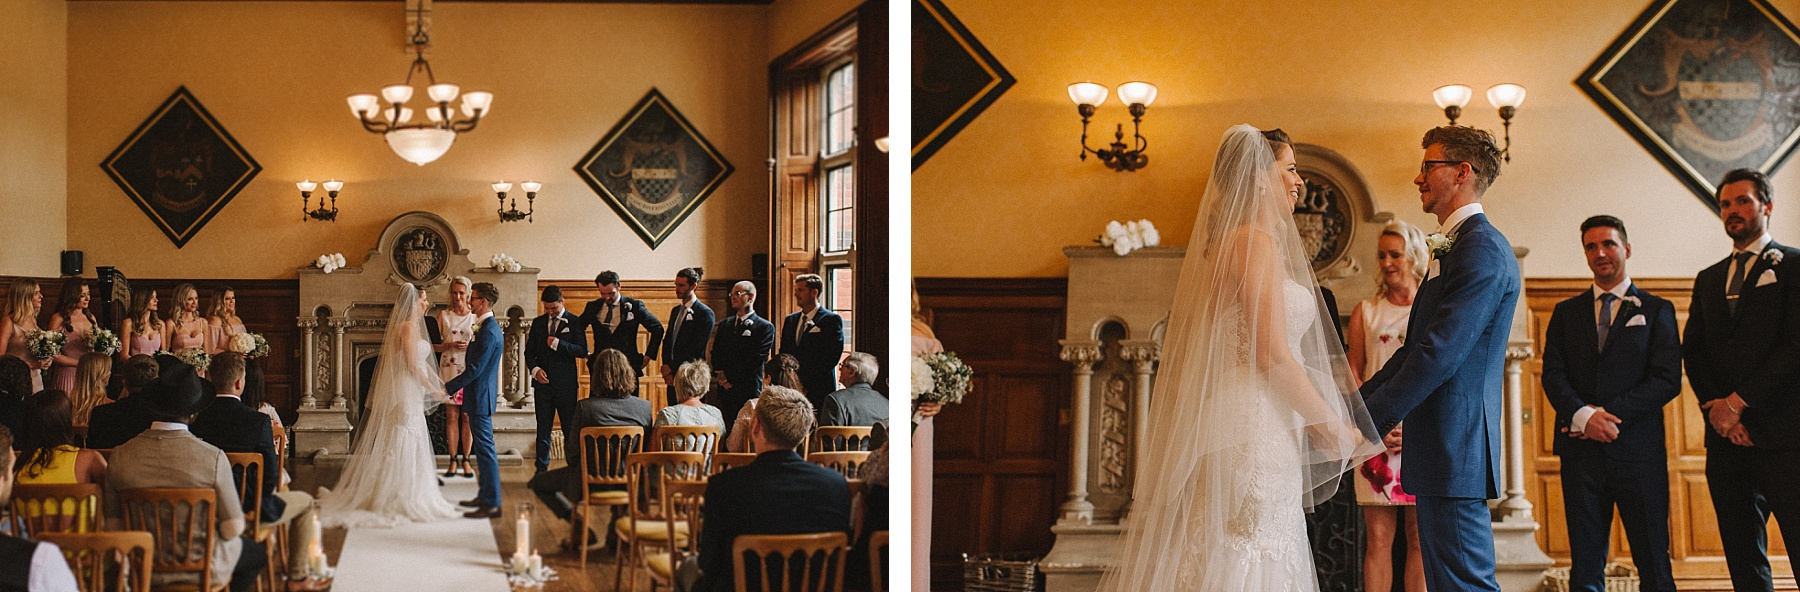 the ceremony at The Elvetham hotel wedding